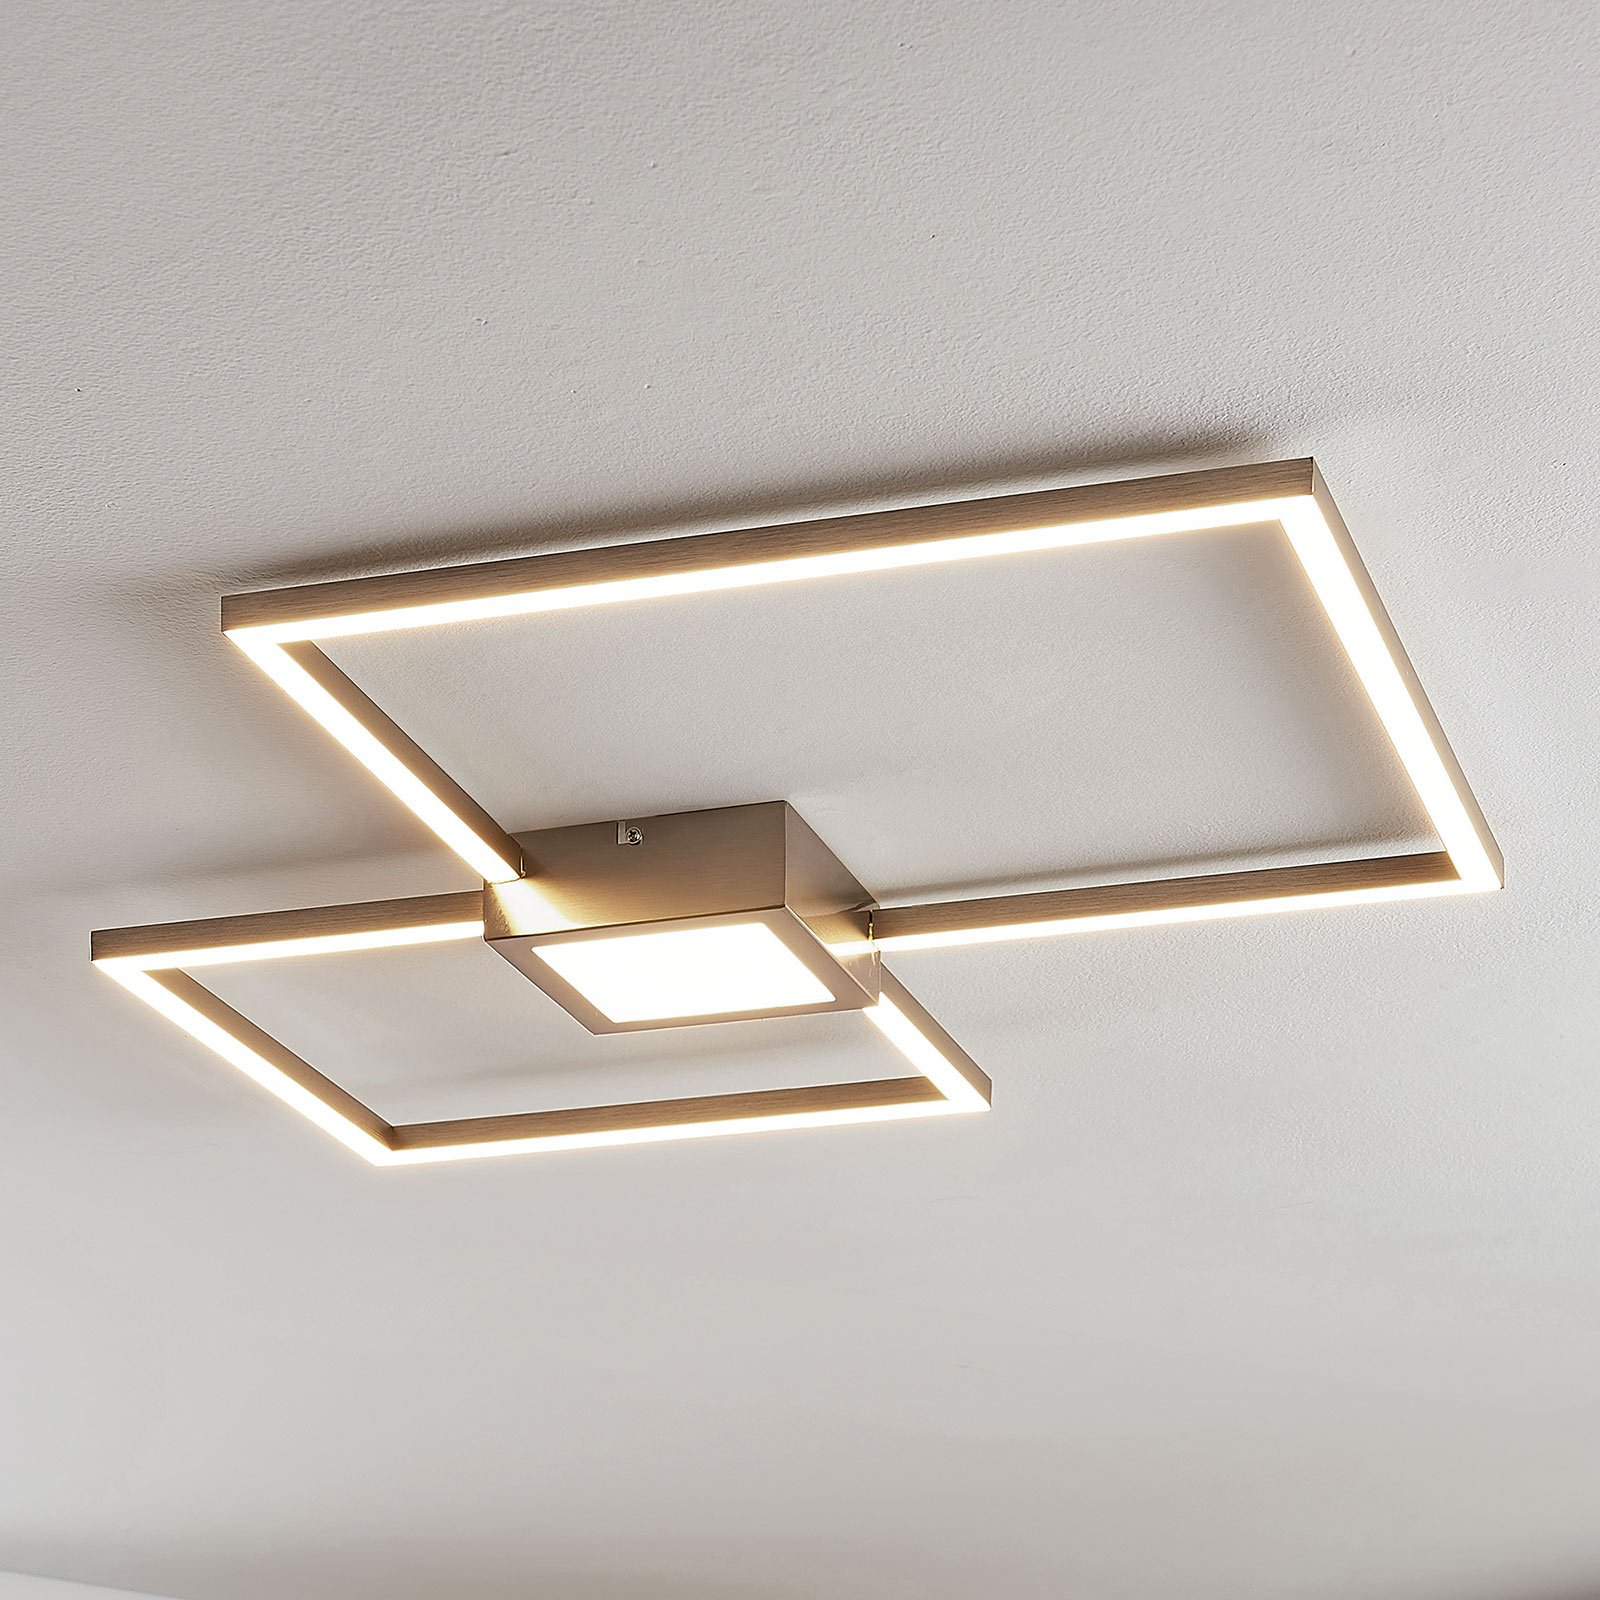 LED-taklampe Duetto, kvadrater